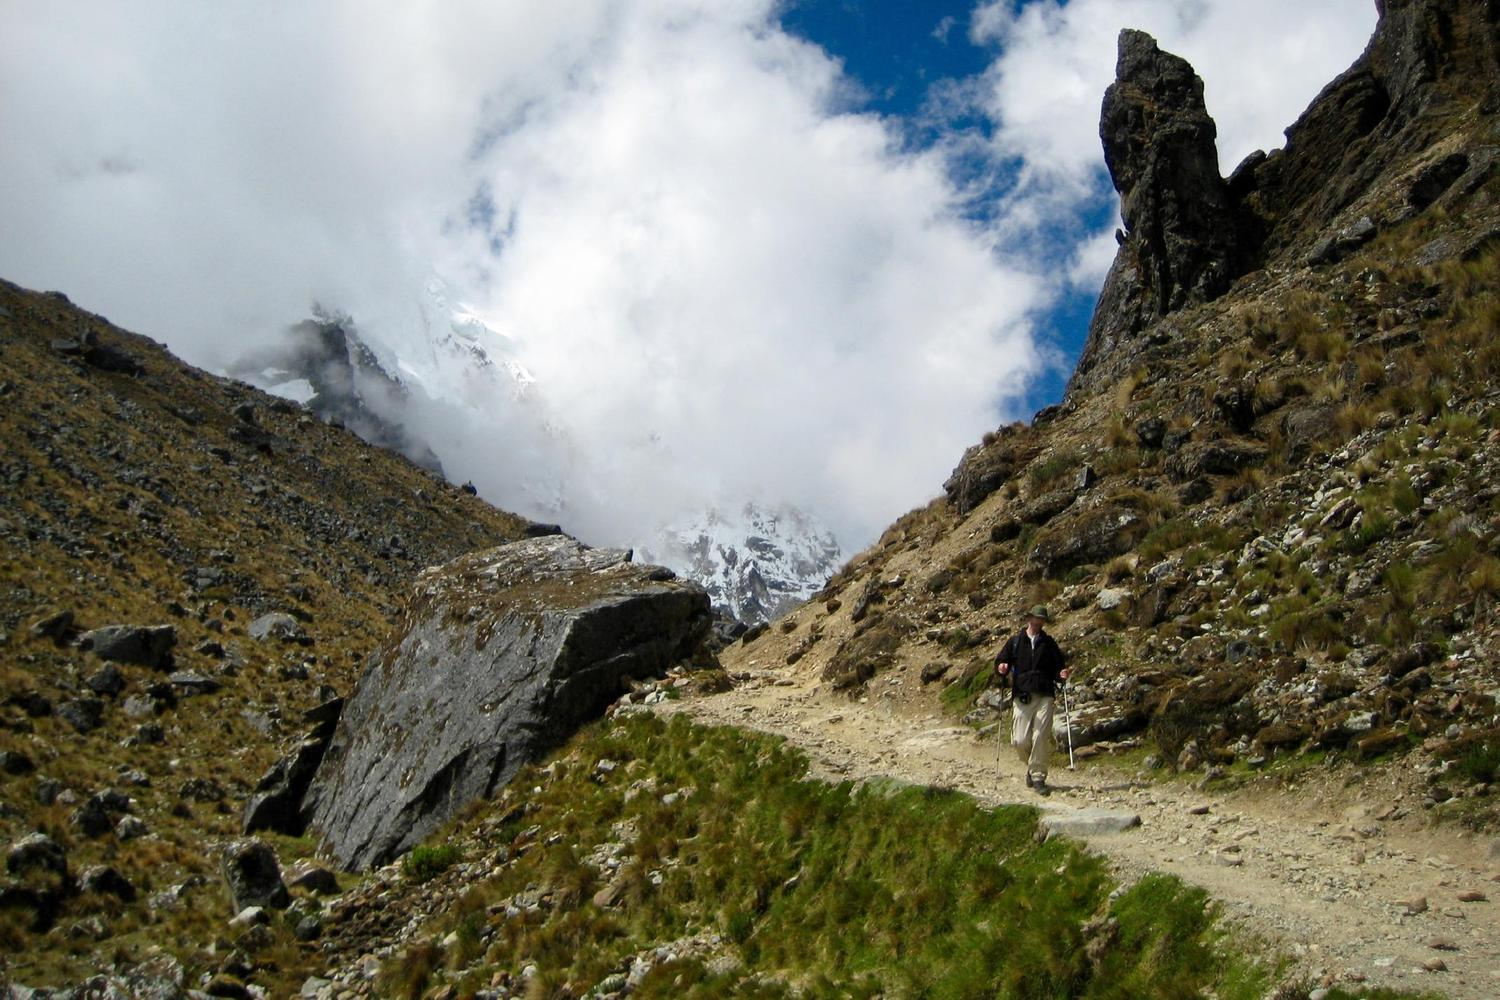 Walking the Salkantay trail